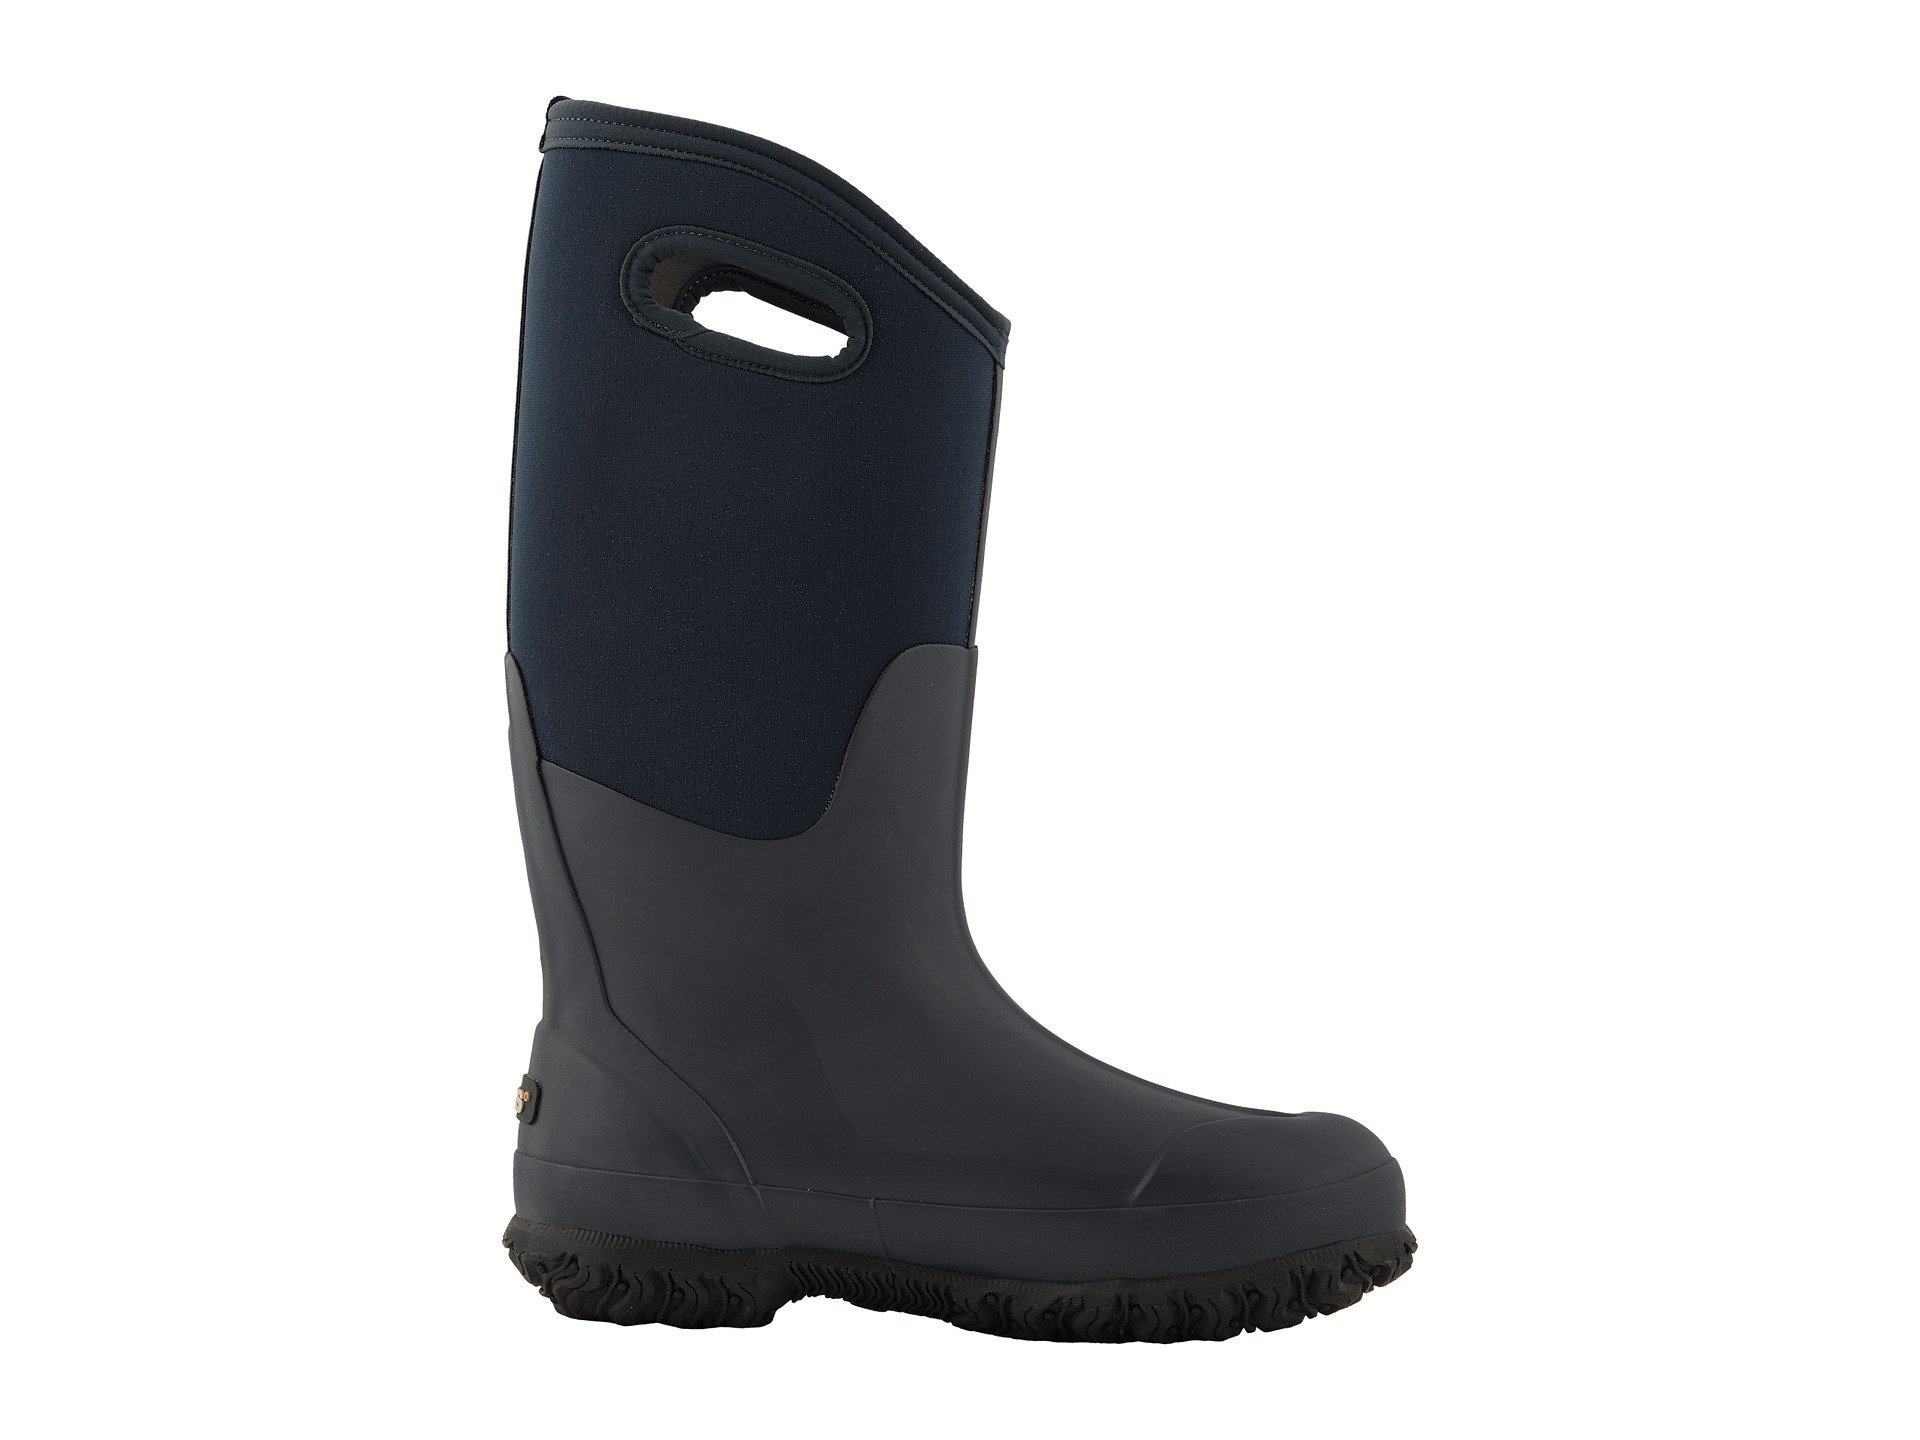 Navy Bogs Bogs Classic Matte Classic Tall wn8Fpx4qn